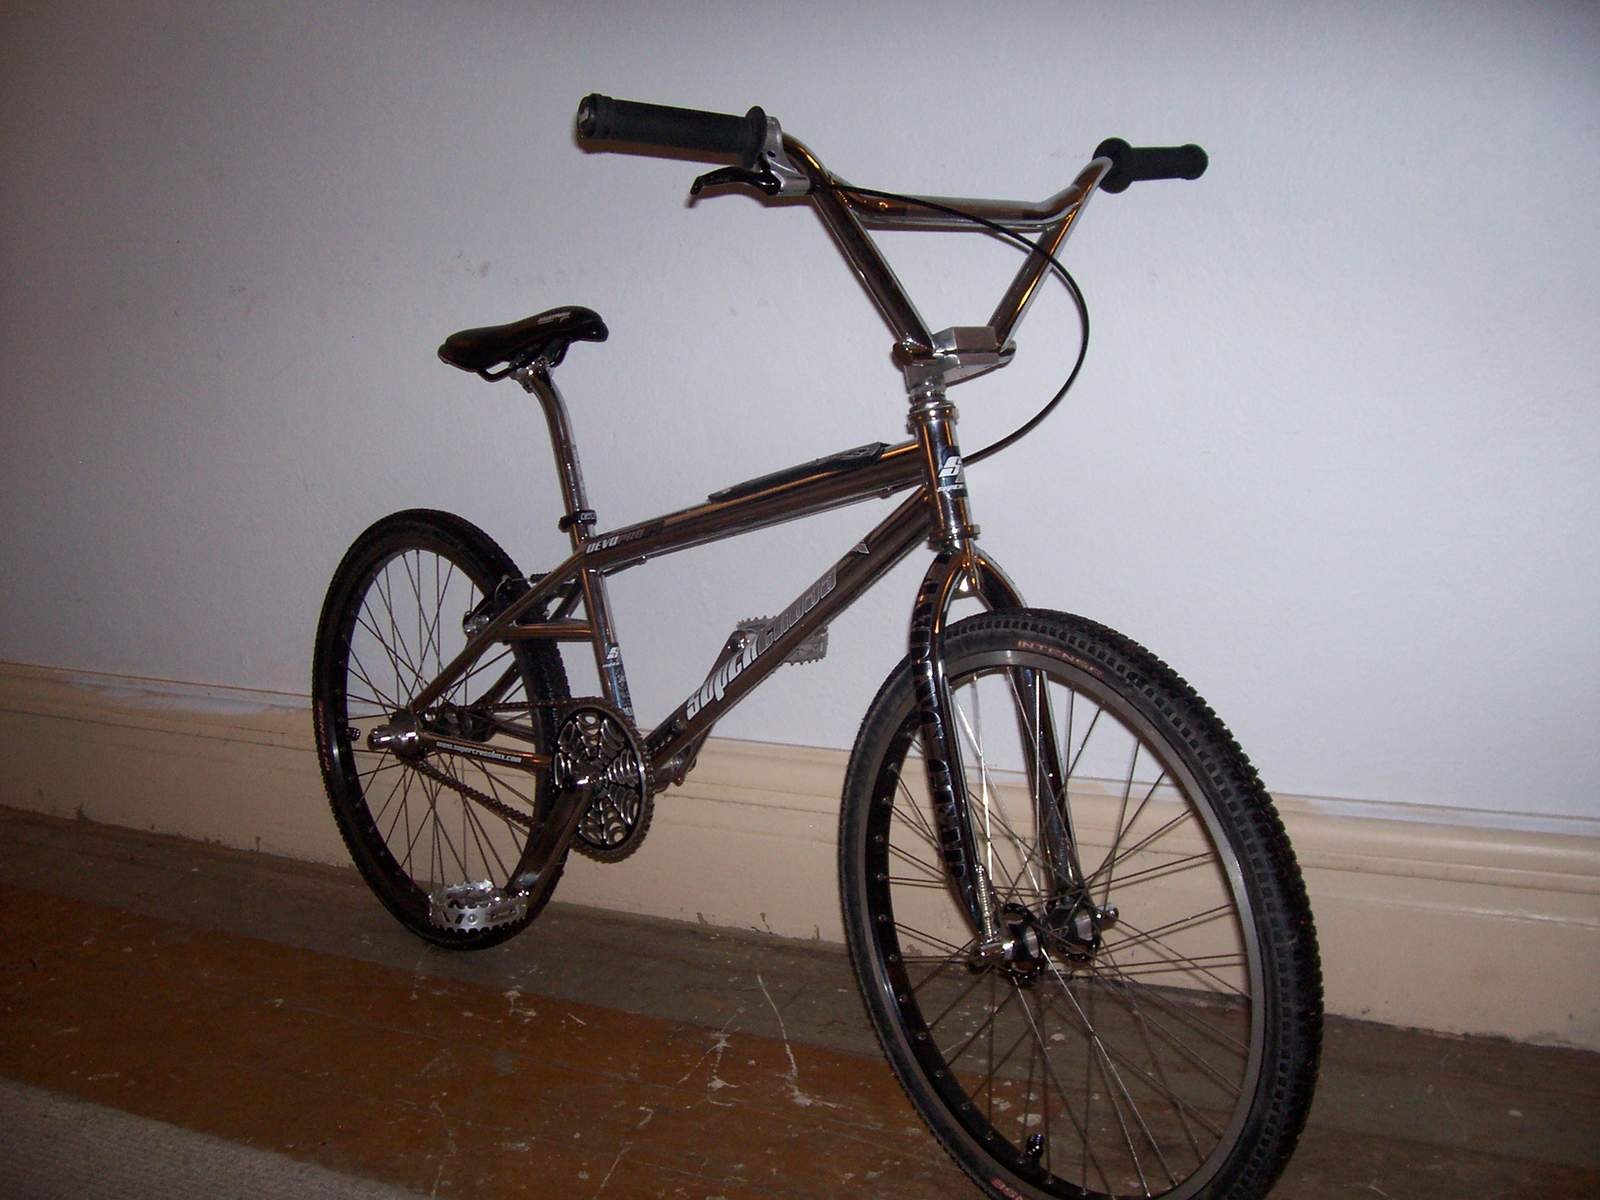 https://s3.amazonaws.com/uploads.bmxmuseum.com/user-images/61851/100_958459a0748e76.jpg